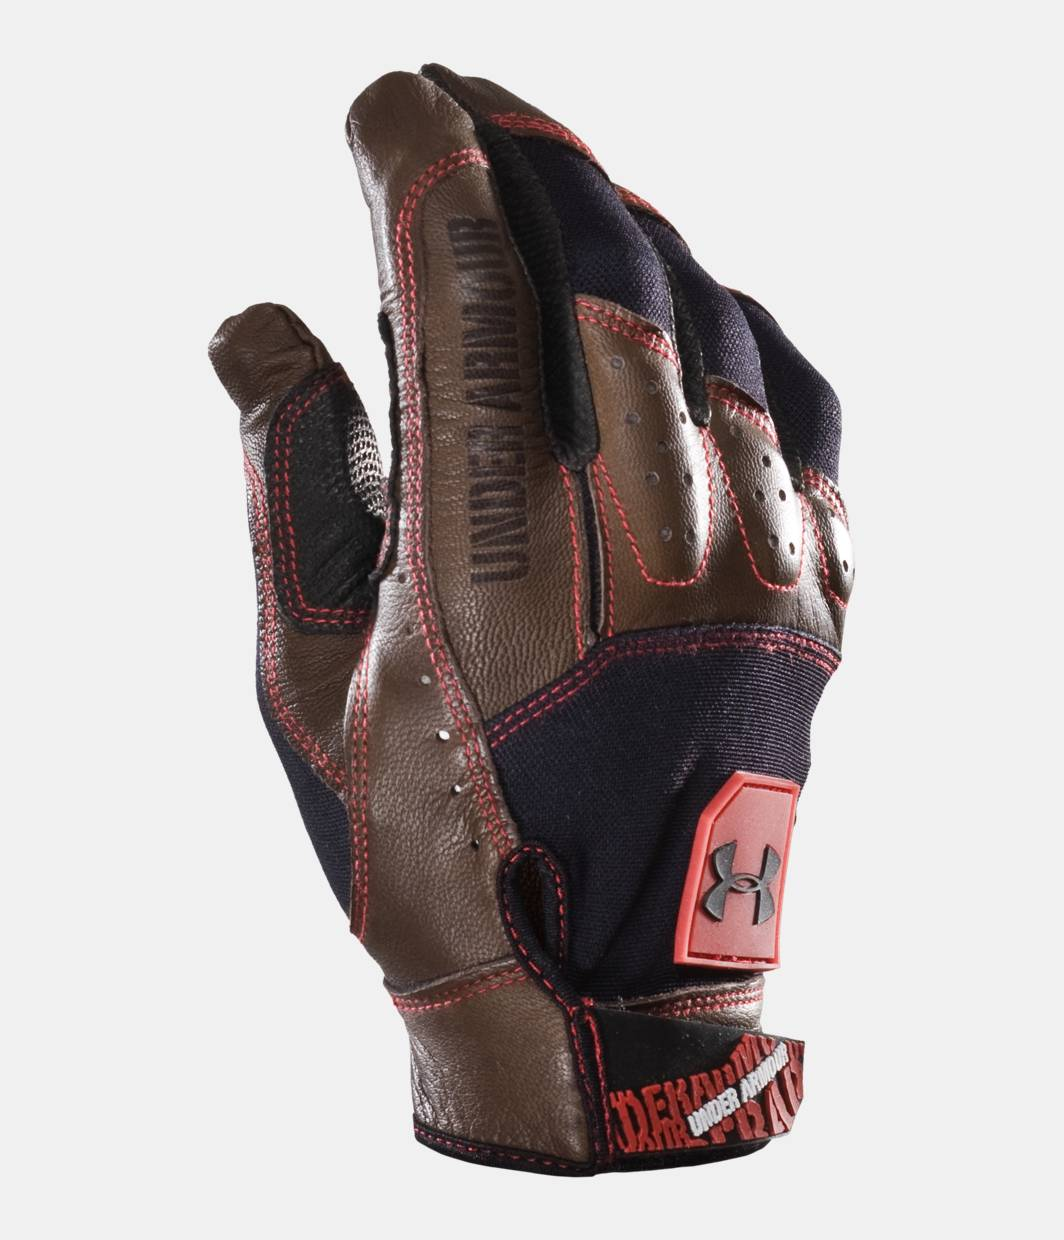 Leather work gloves ireland - Leather Impact Gloves Hearthstone Zoomed Image